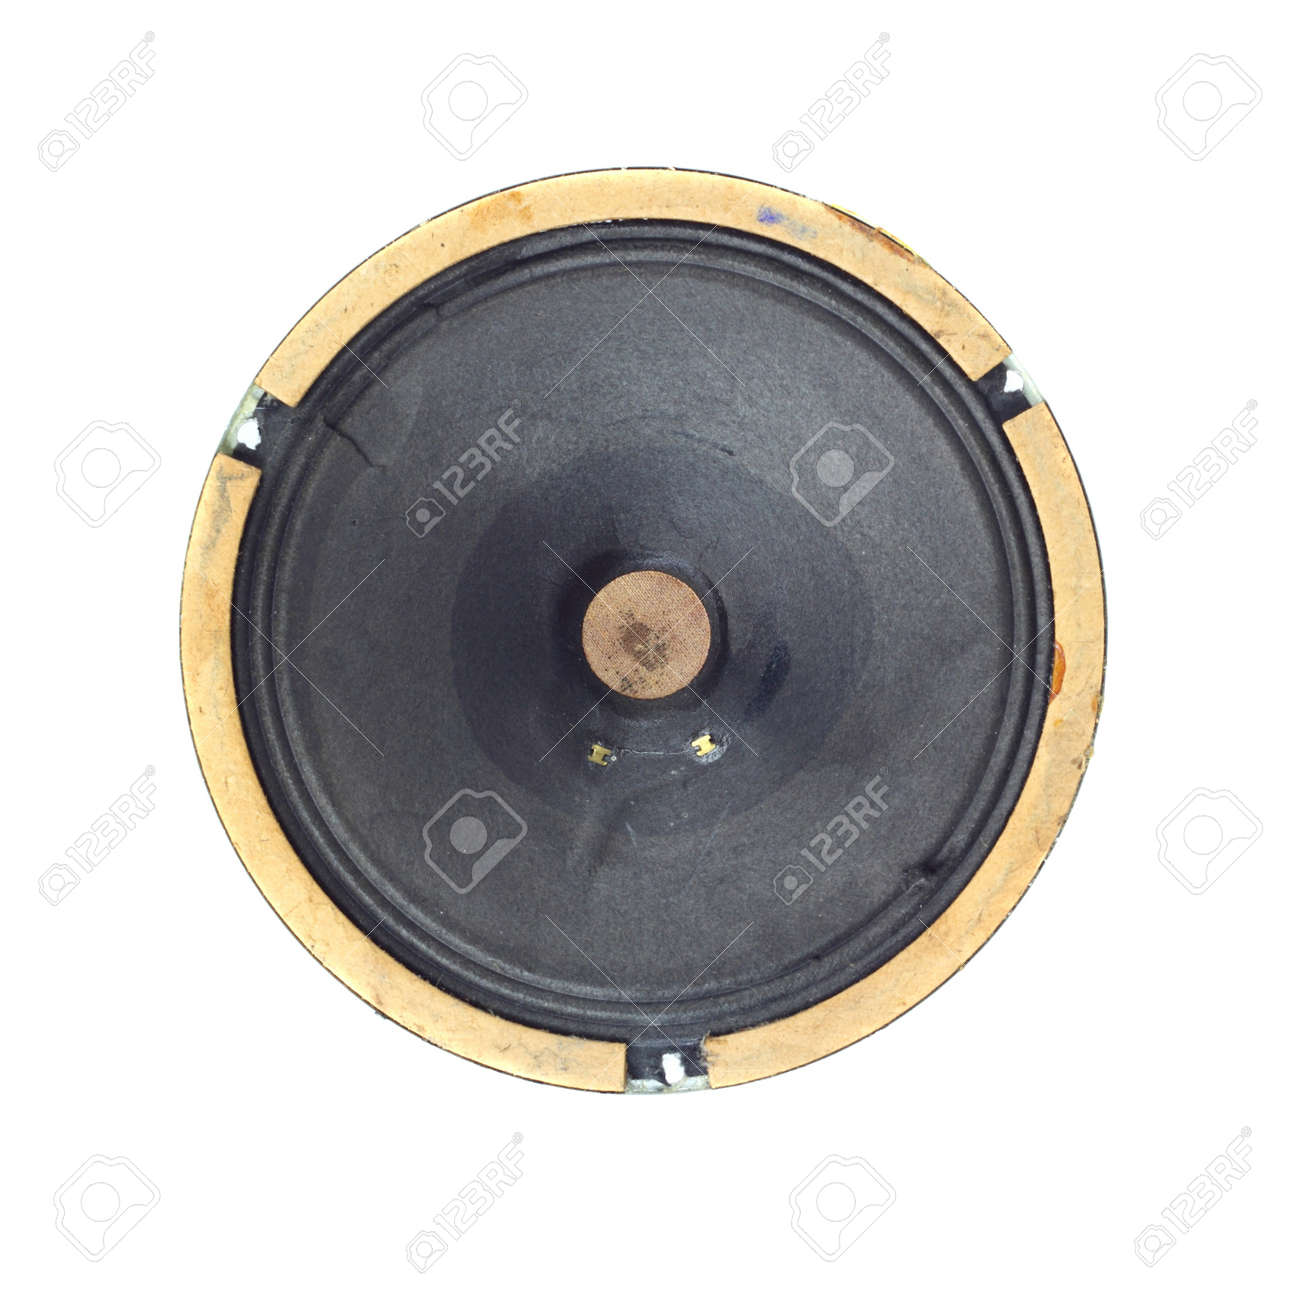 Loud speaker from vintage radio isolated on white Stock Photo - 16392991